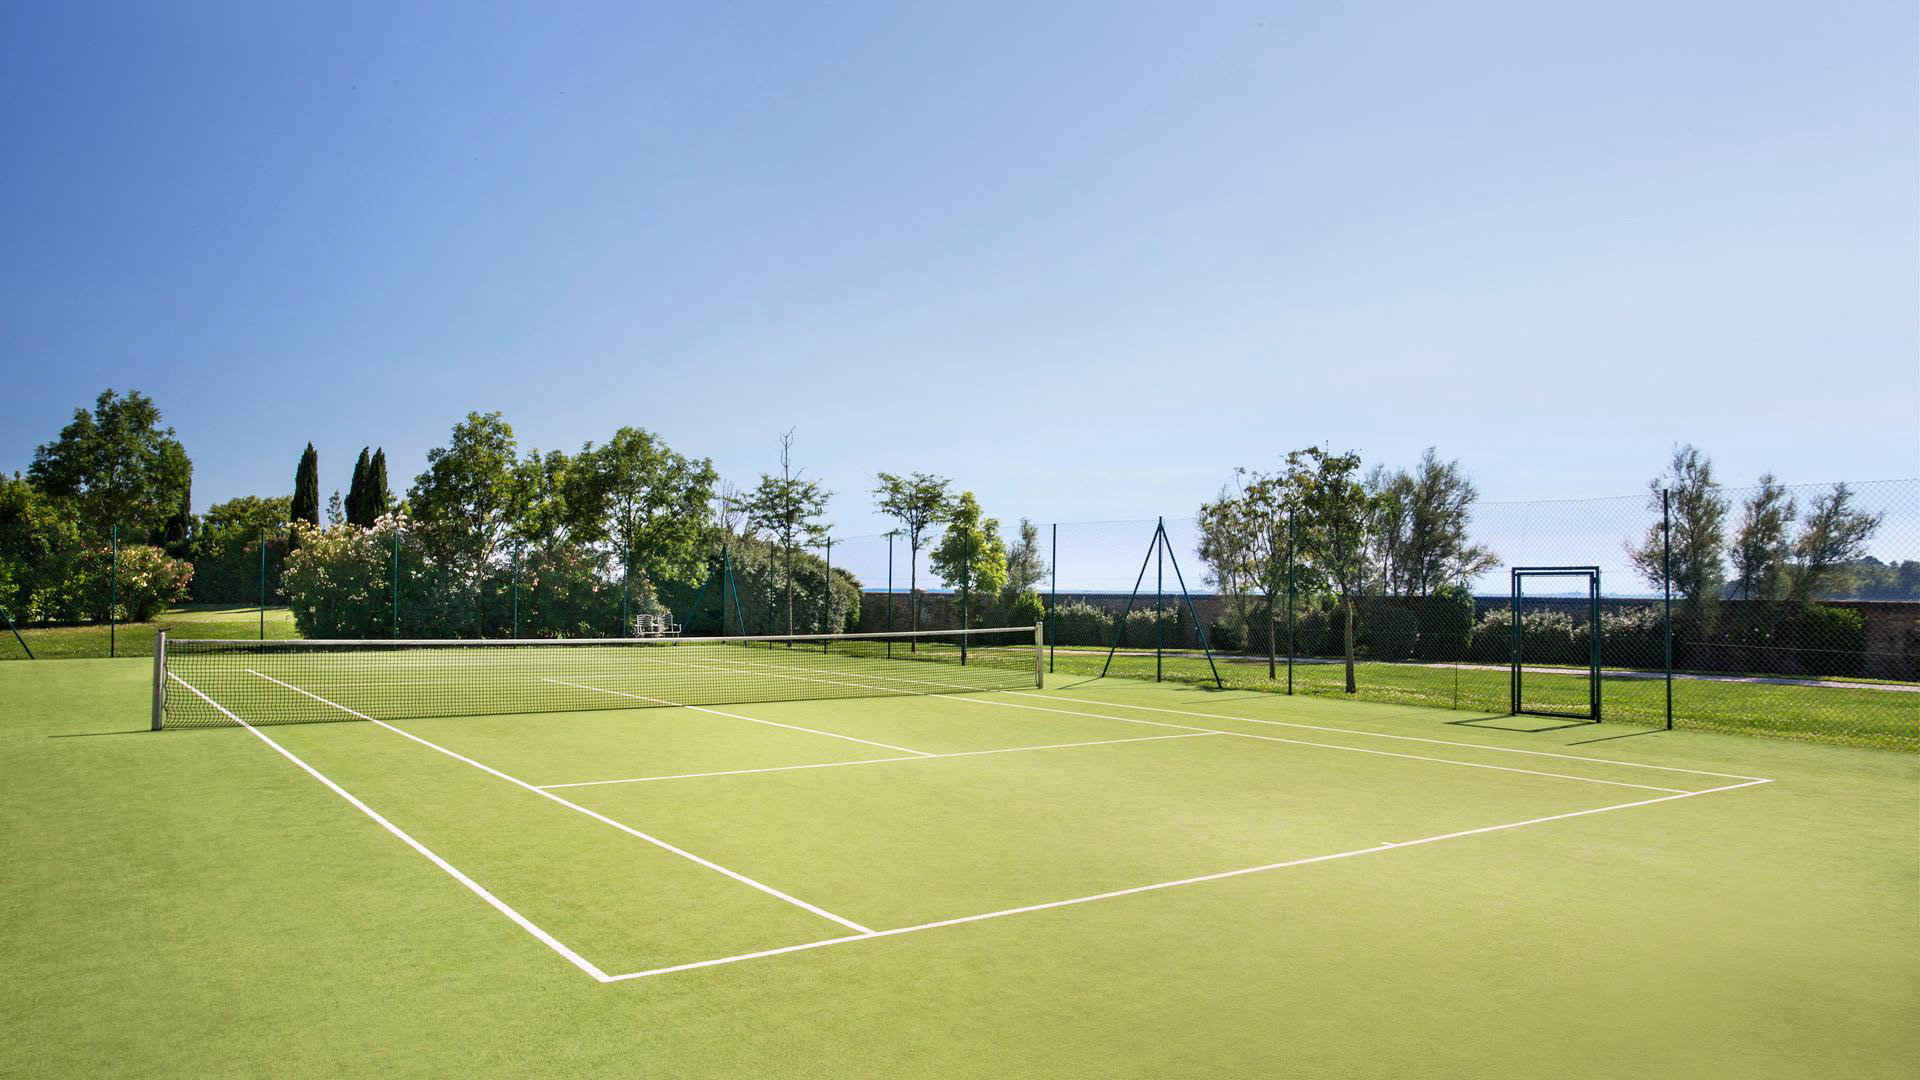 athletic game Sport sky grass tennis structure sport venue sports ball game tennis court baseball field soccer specific stadium stadium lawn golf course